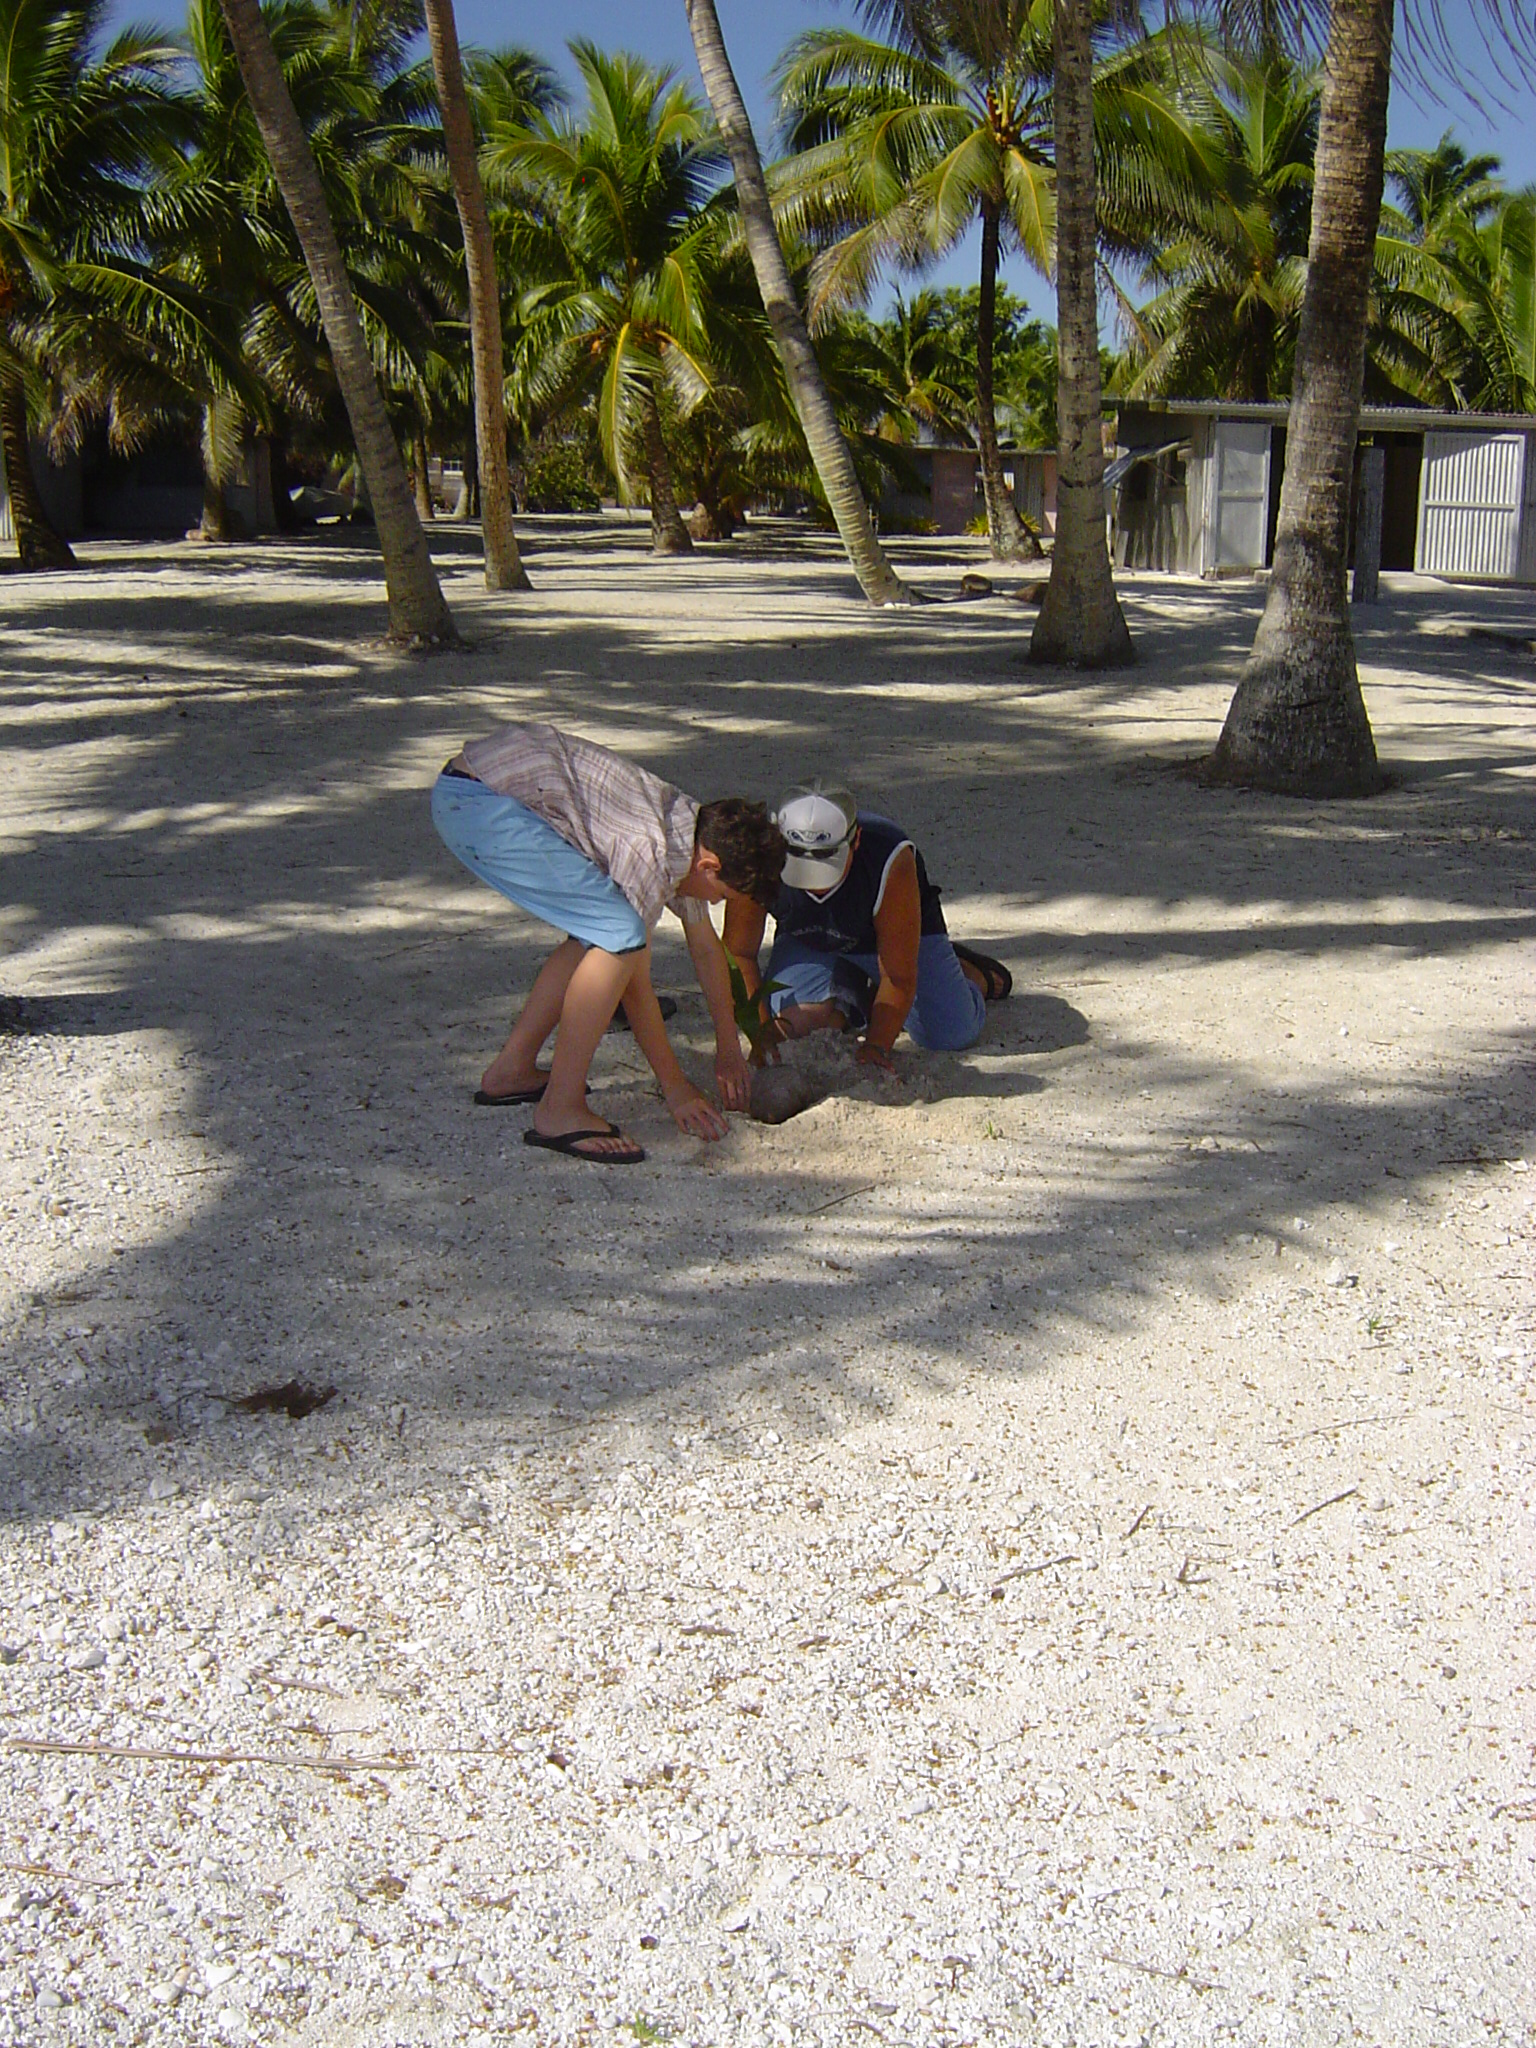 Planting a coconut tree  in memory of their visit